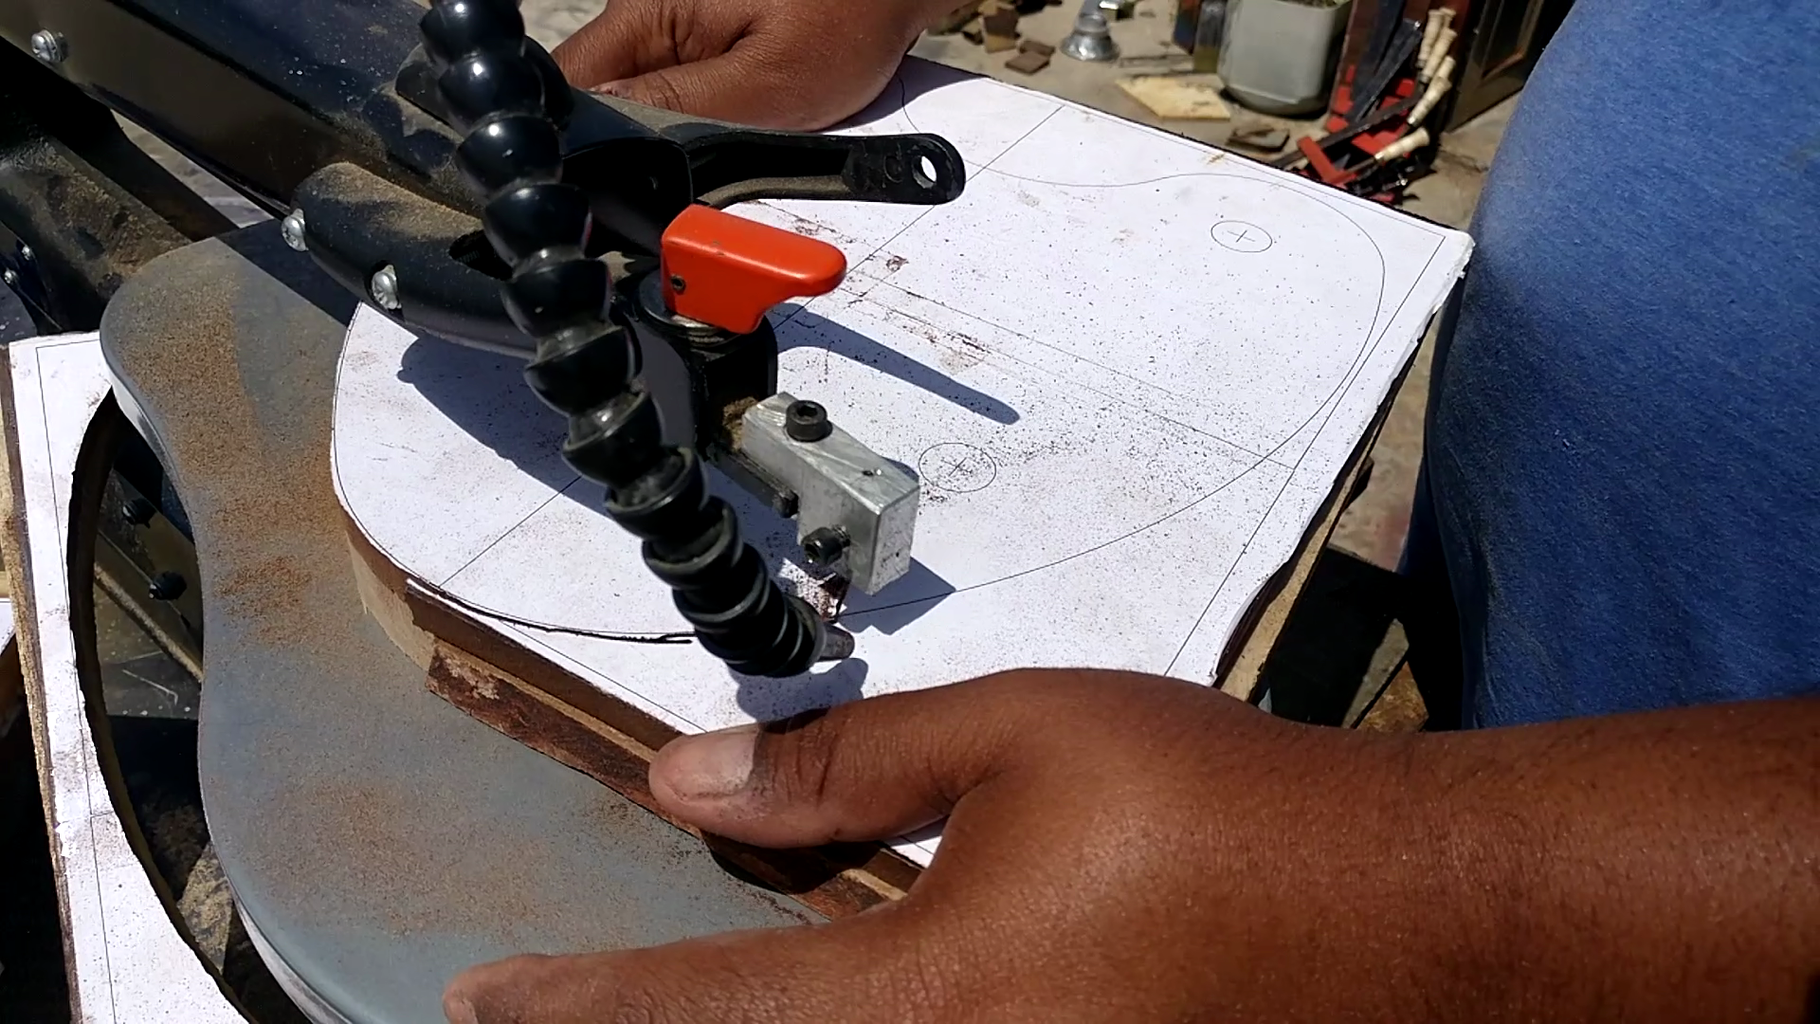 Cutting the Material According to the Template